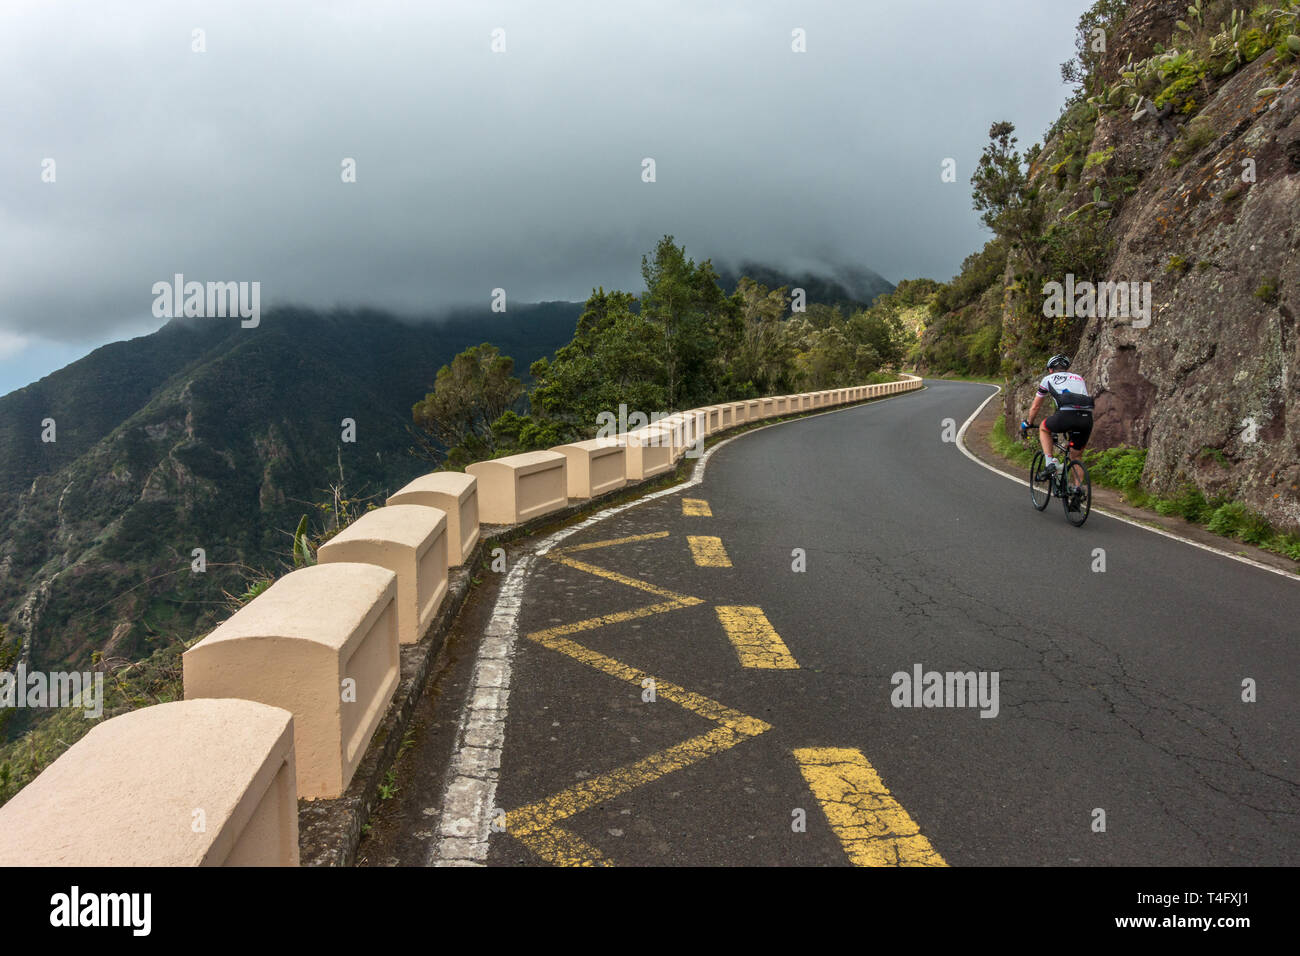 Dramatic mountain view of a cyclist on a road bike under the cloud in the Parque Rural de Anaga park, on the TF-12 road, Tenerife Stock Photo